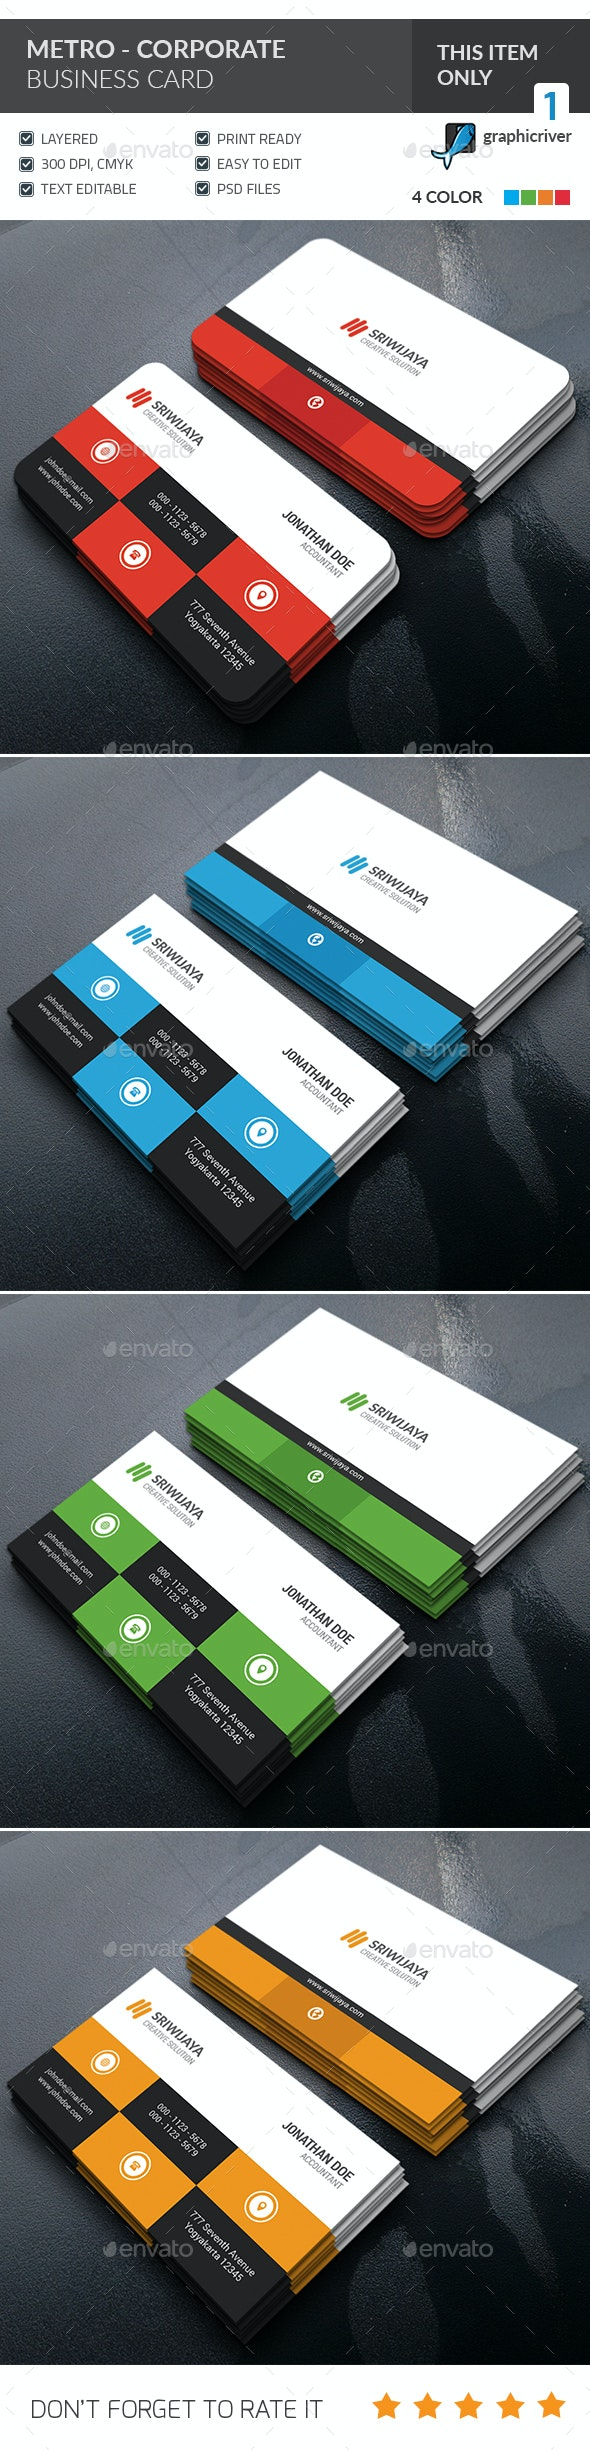 Metro Corporate Business Card - Corporate Business Cards